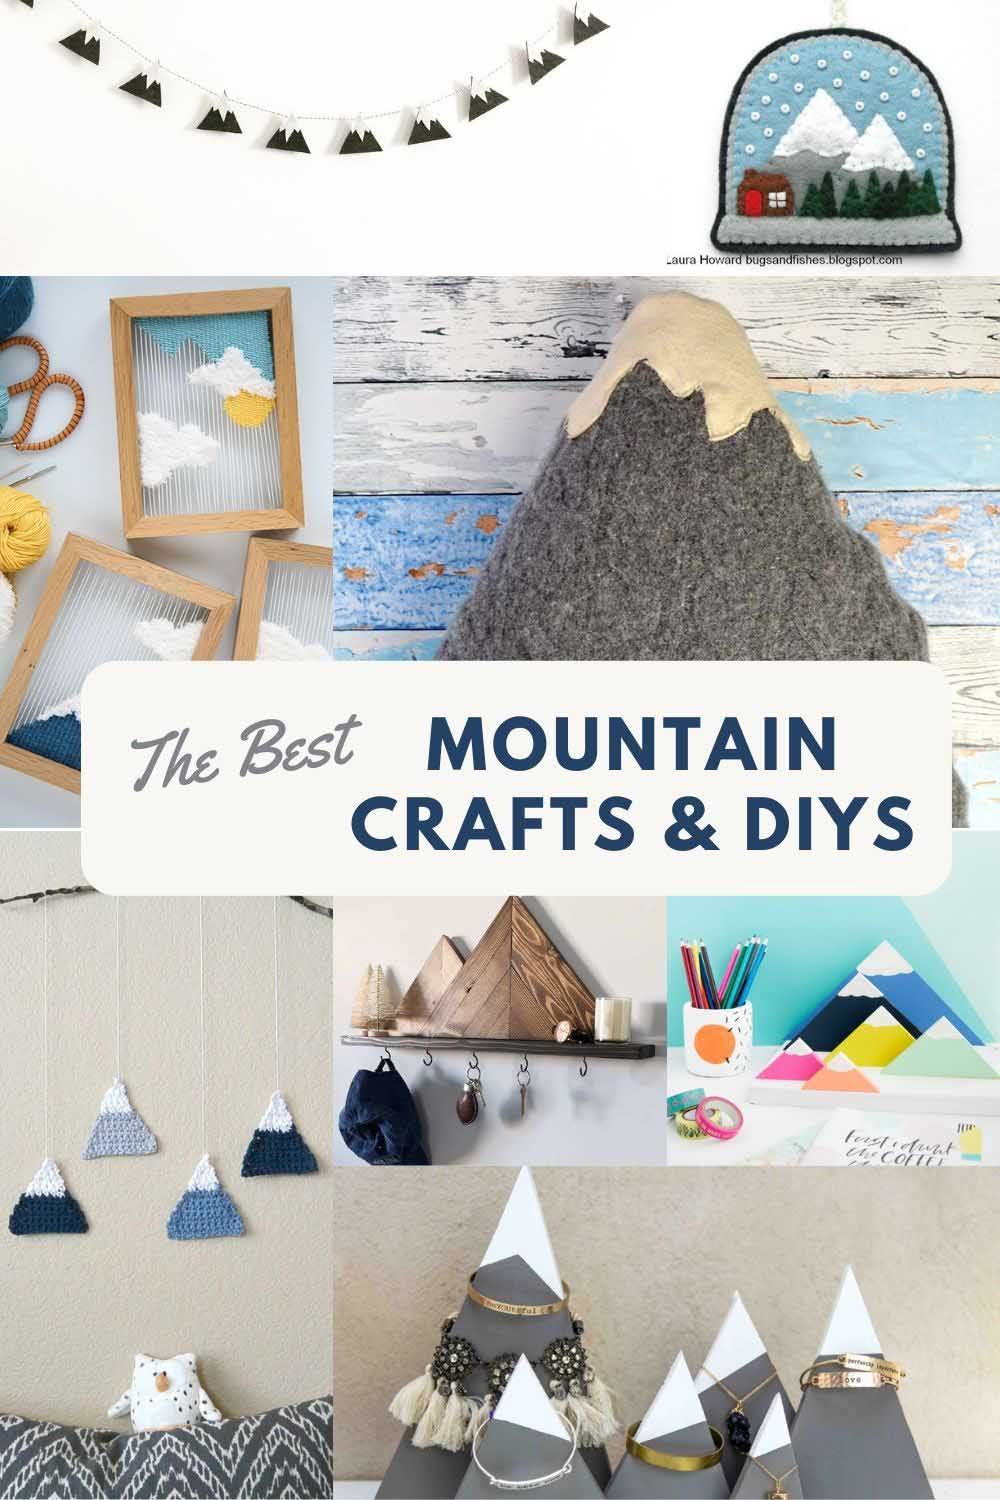 Breathtaking mountain crafts and DIYs